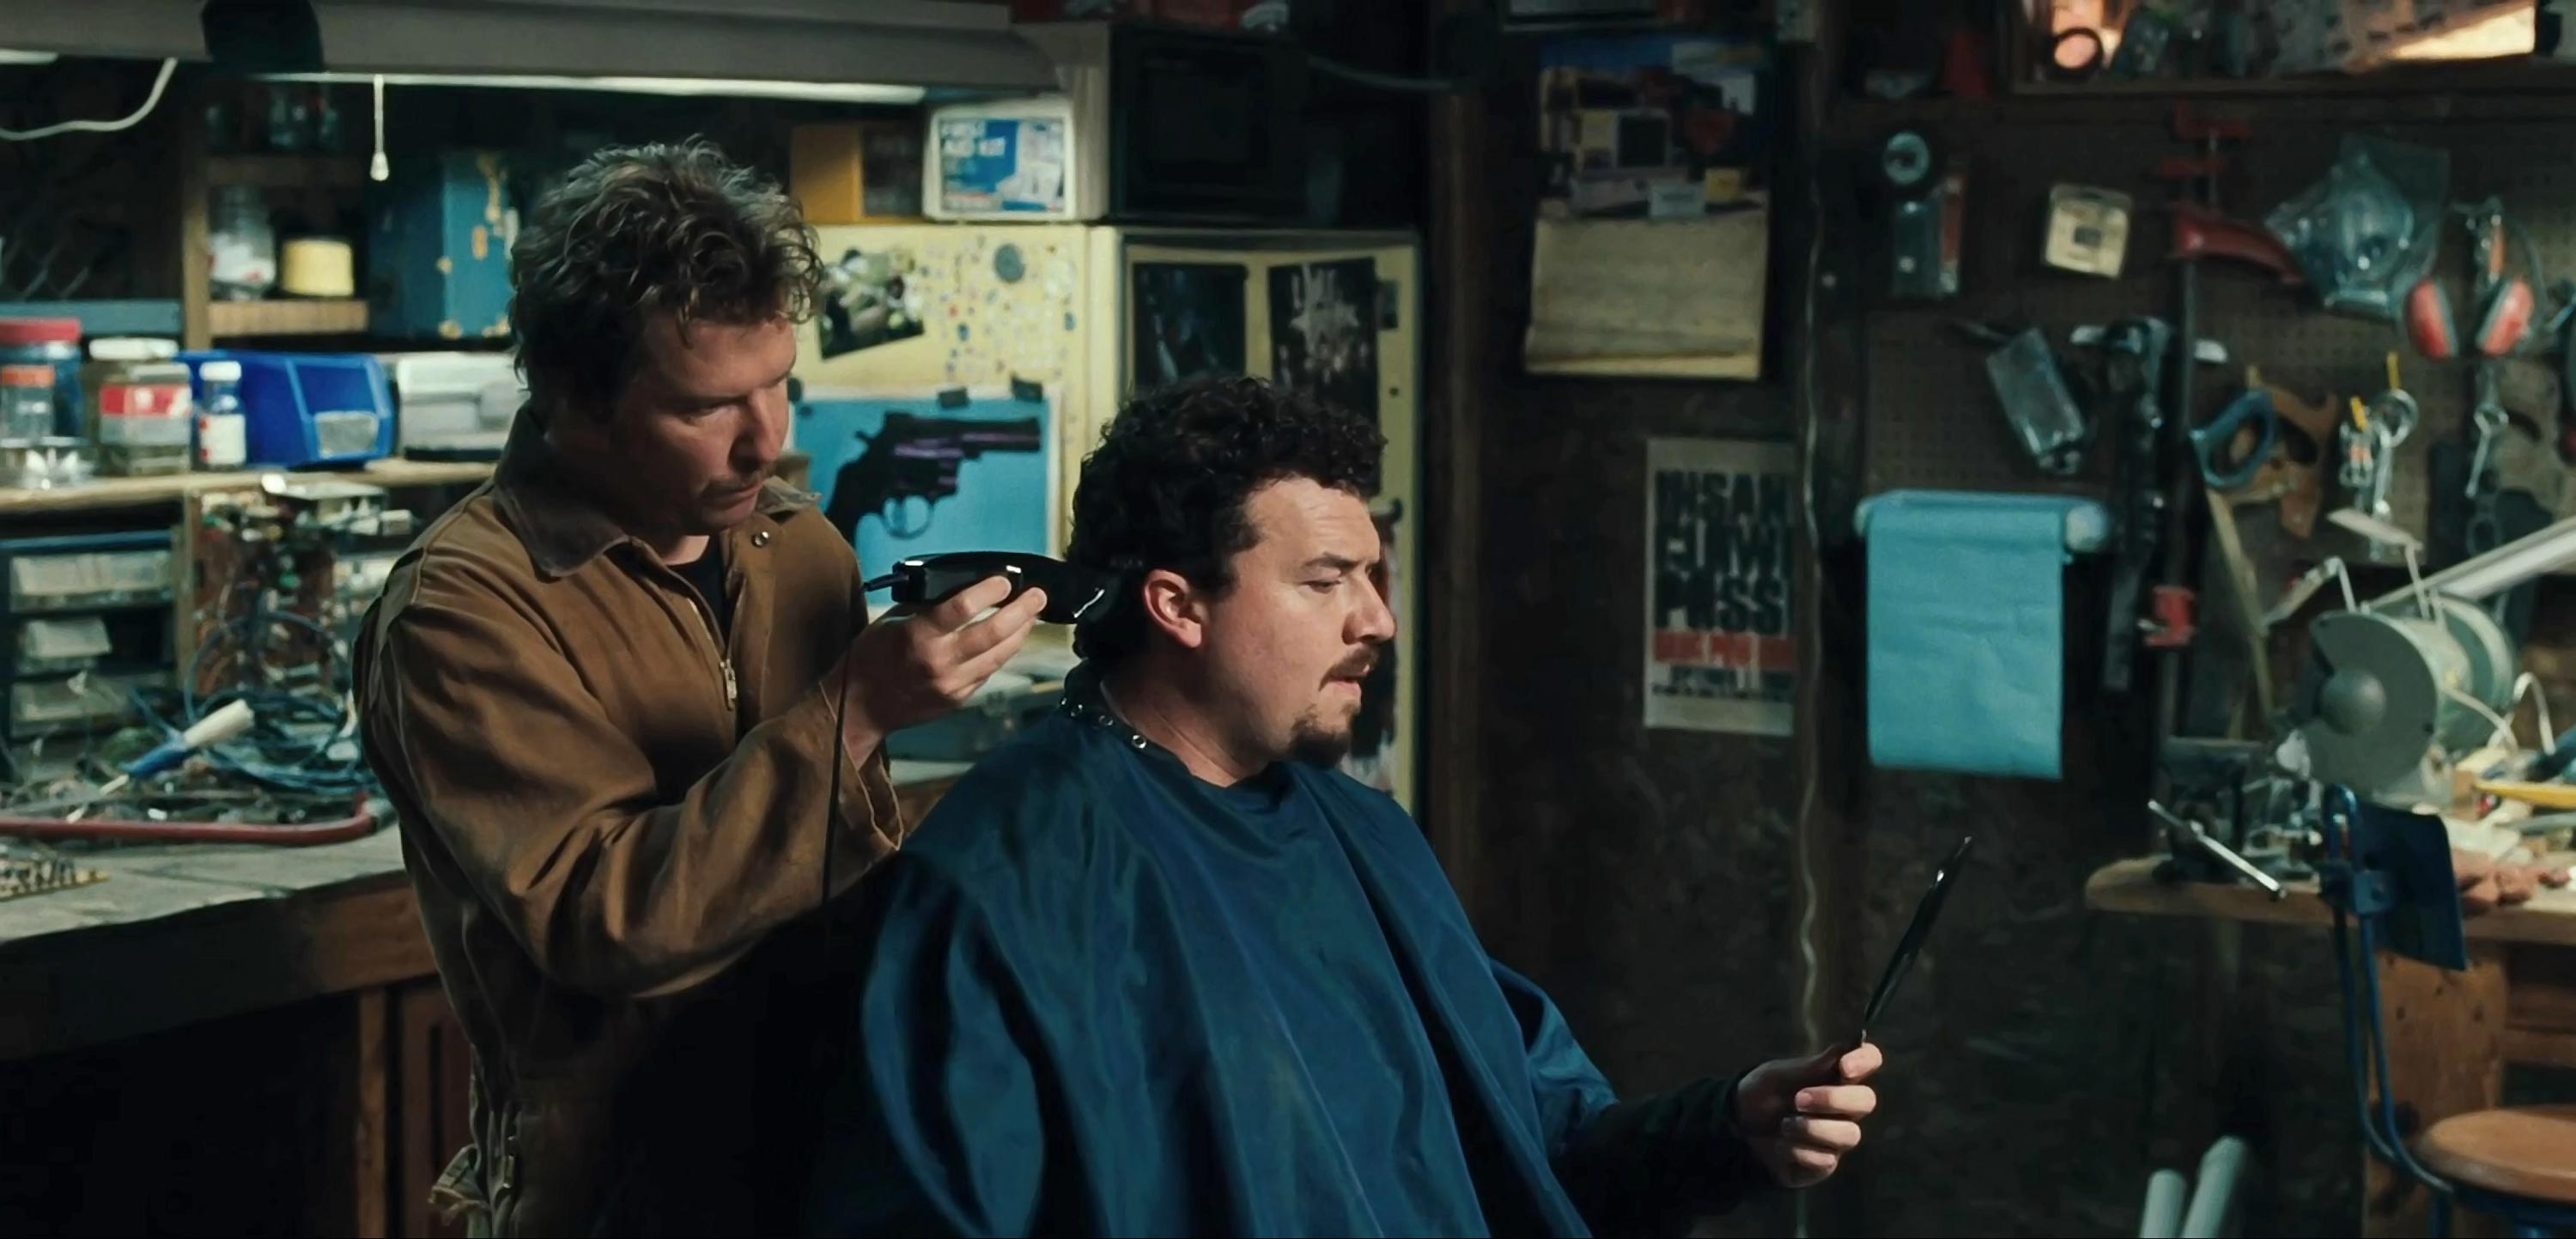 Nick Swardson and Danny McBride in 30 Minutes or Less